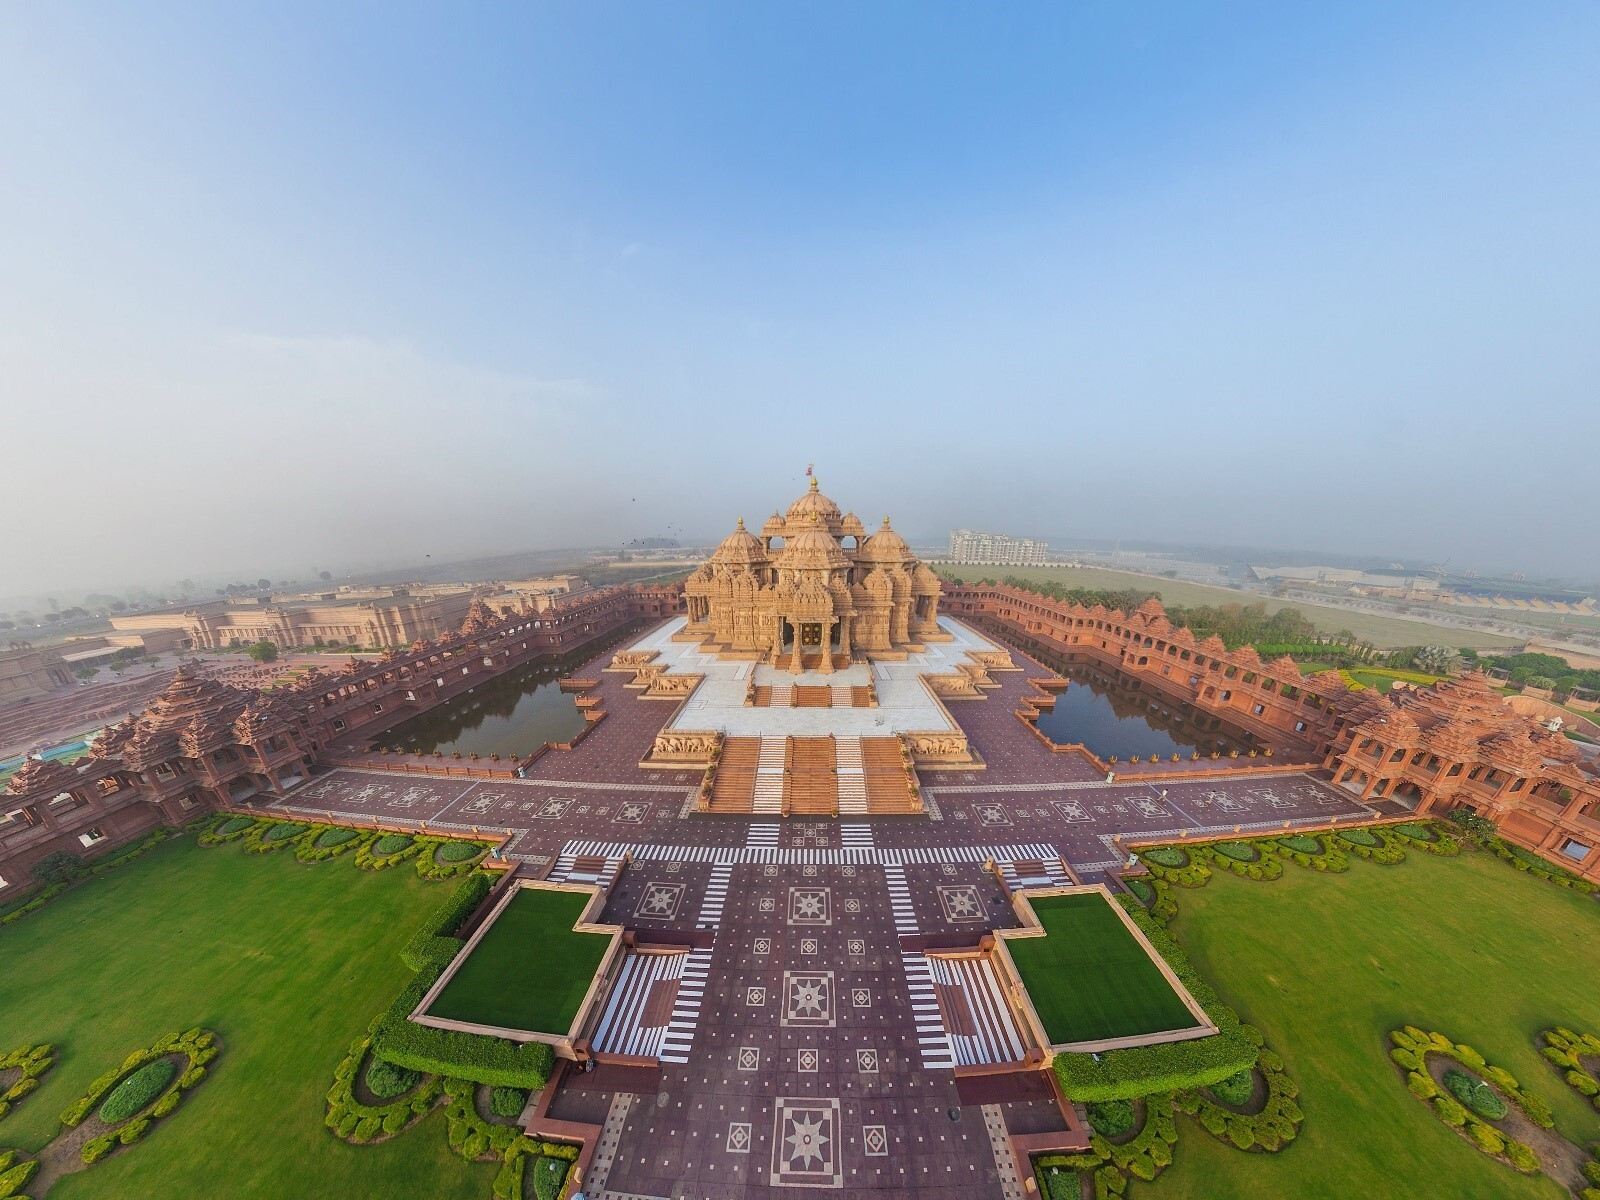 Swaminarayan akshardham hindu temple in delhi hd wallpapers hd swaminarayan akshardham hindu temple in delhi hd wallpapers hd wallpapers thecheapjerseys